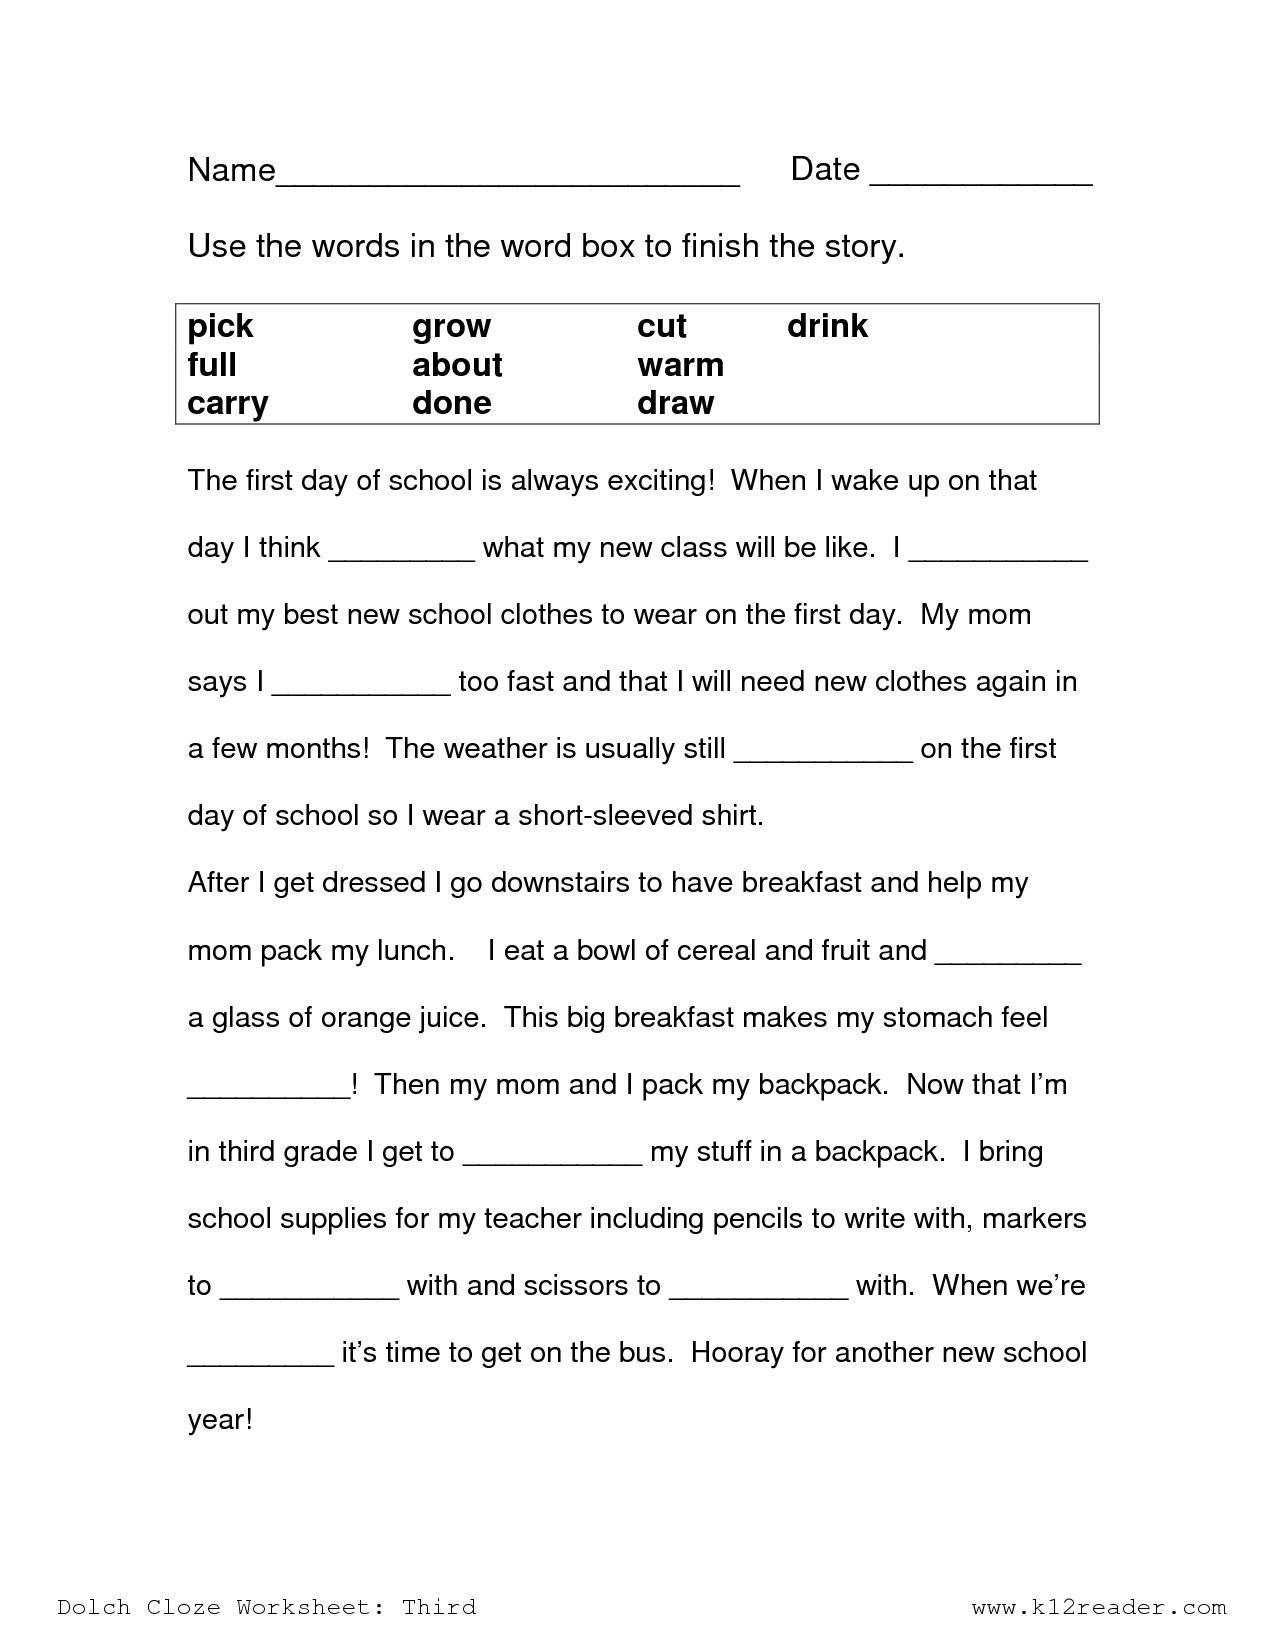 Free Worksheet Free Printable Reading Comprehension Worksheets For 3rd Grade reading paragraphs for 3rd grade laptuoso free printable worksheets word lists and laptuoso